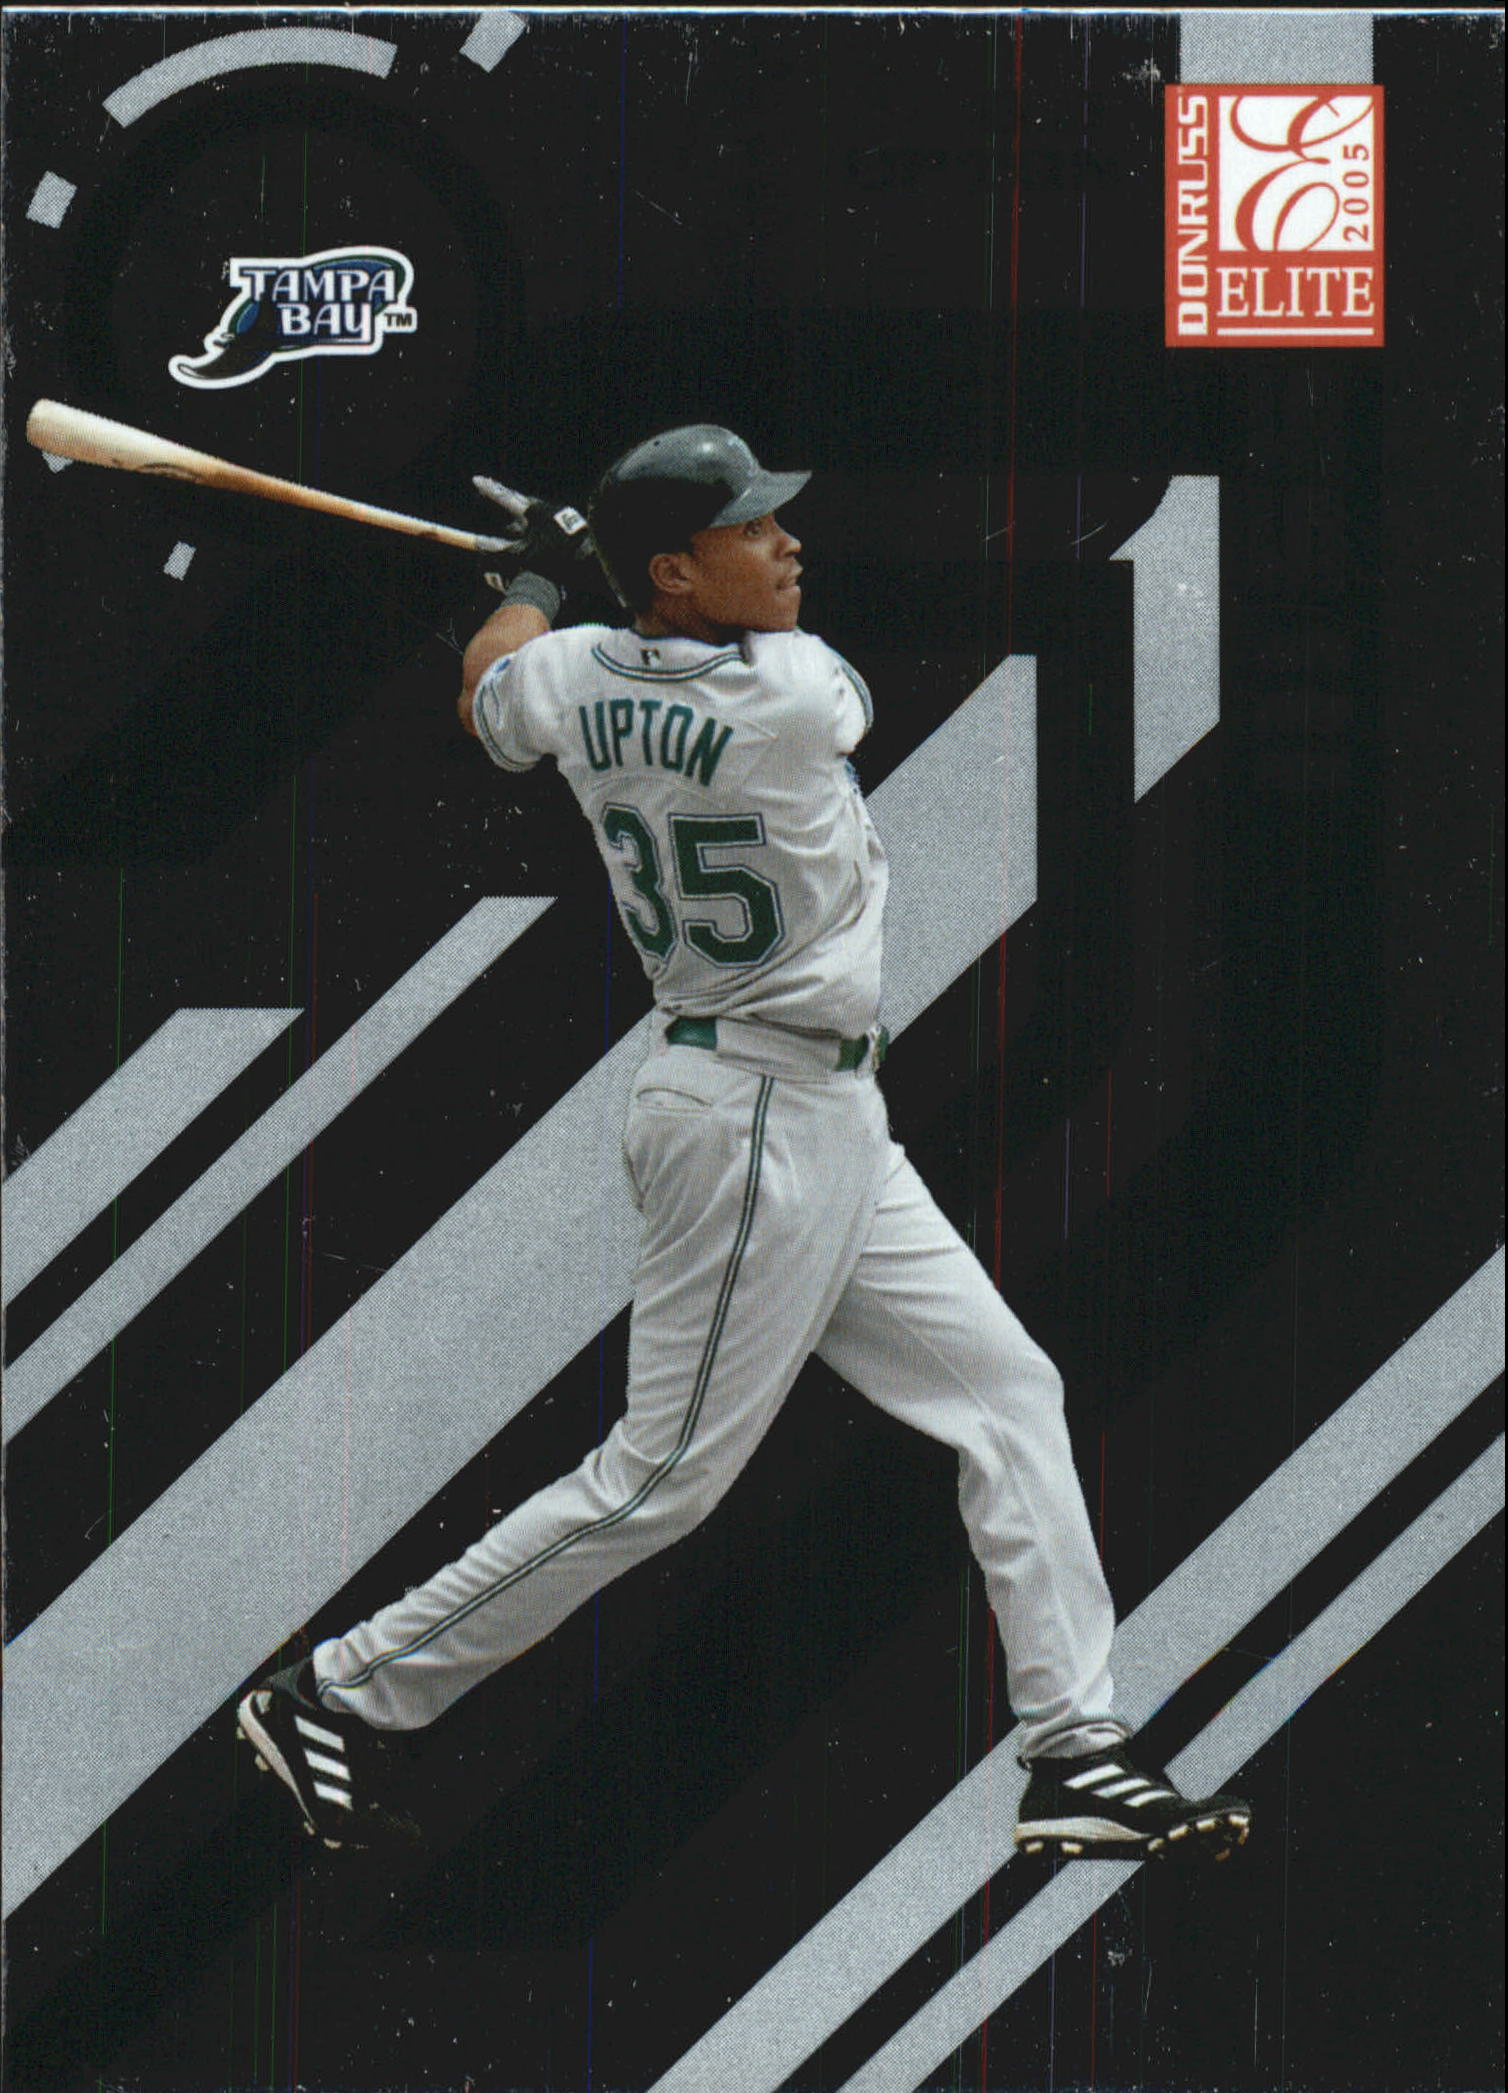 2005 Donruss Elite #137 B.J. Upton